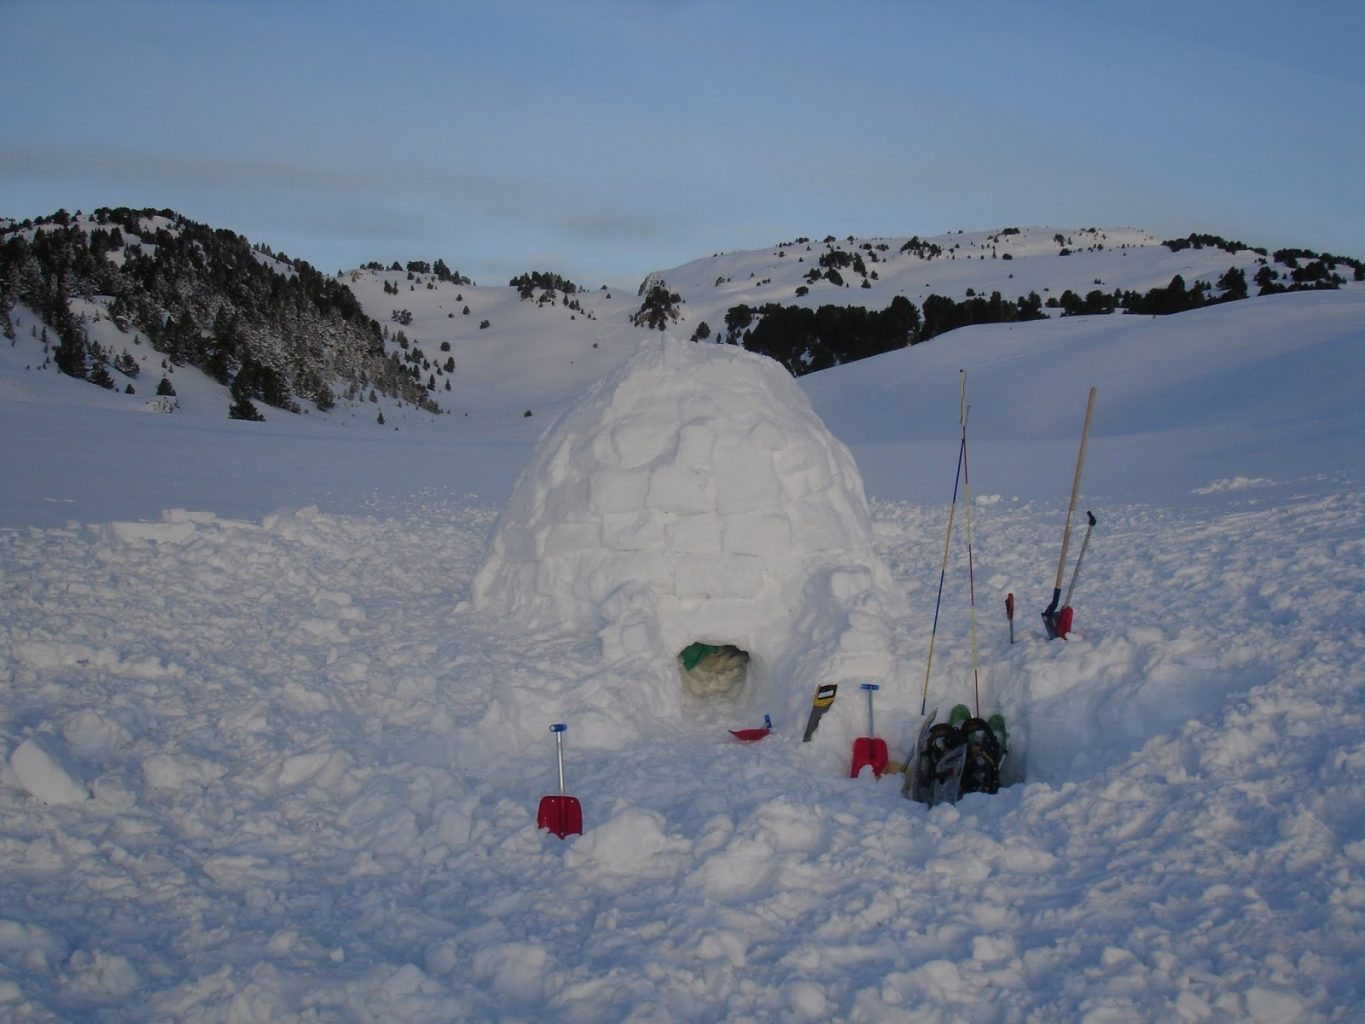 igloo-vercors-vincent-alpes-ecotourisme